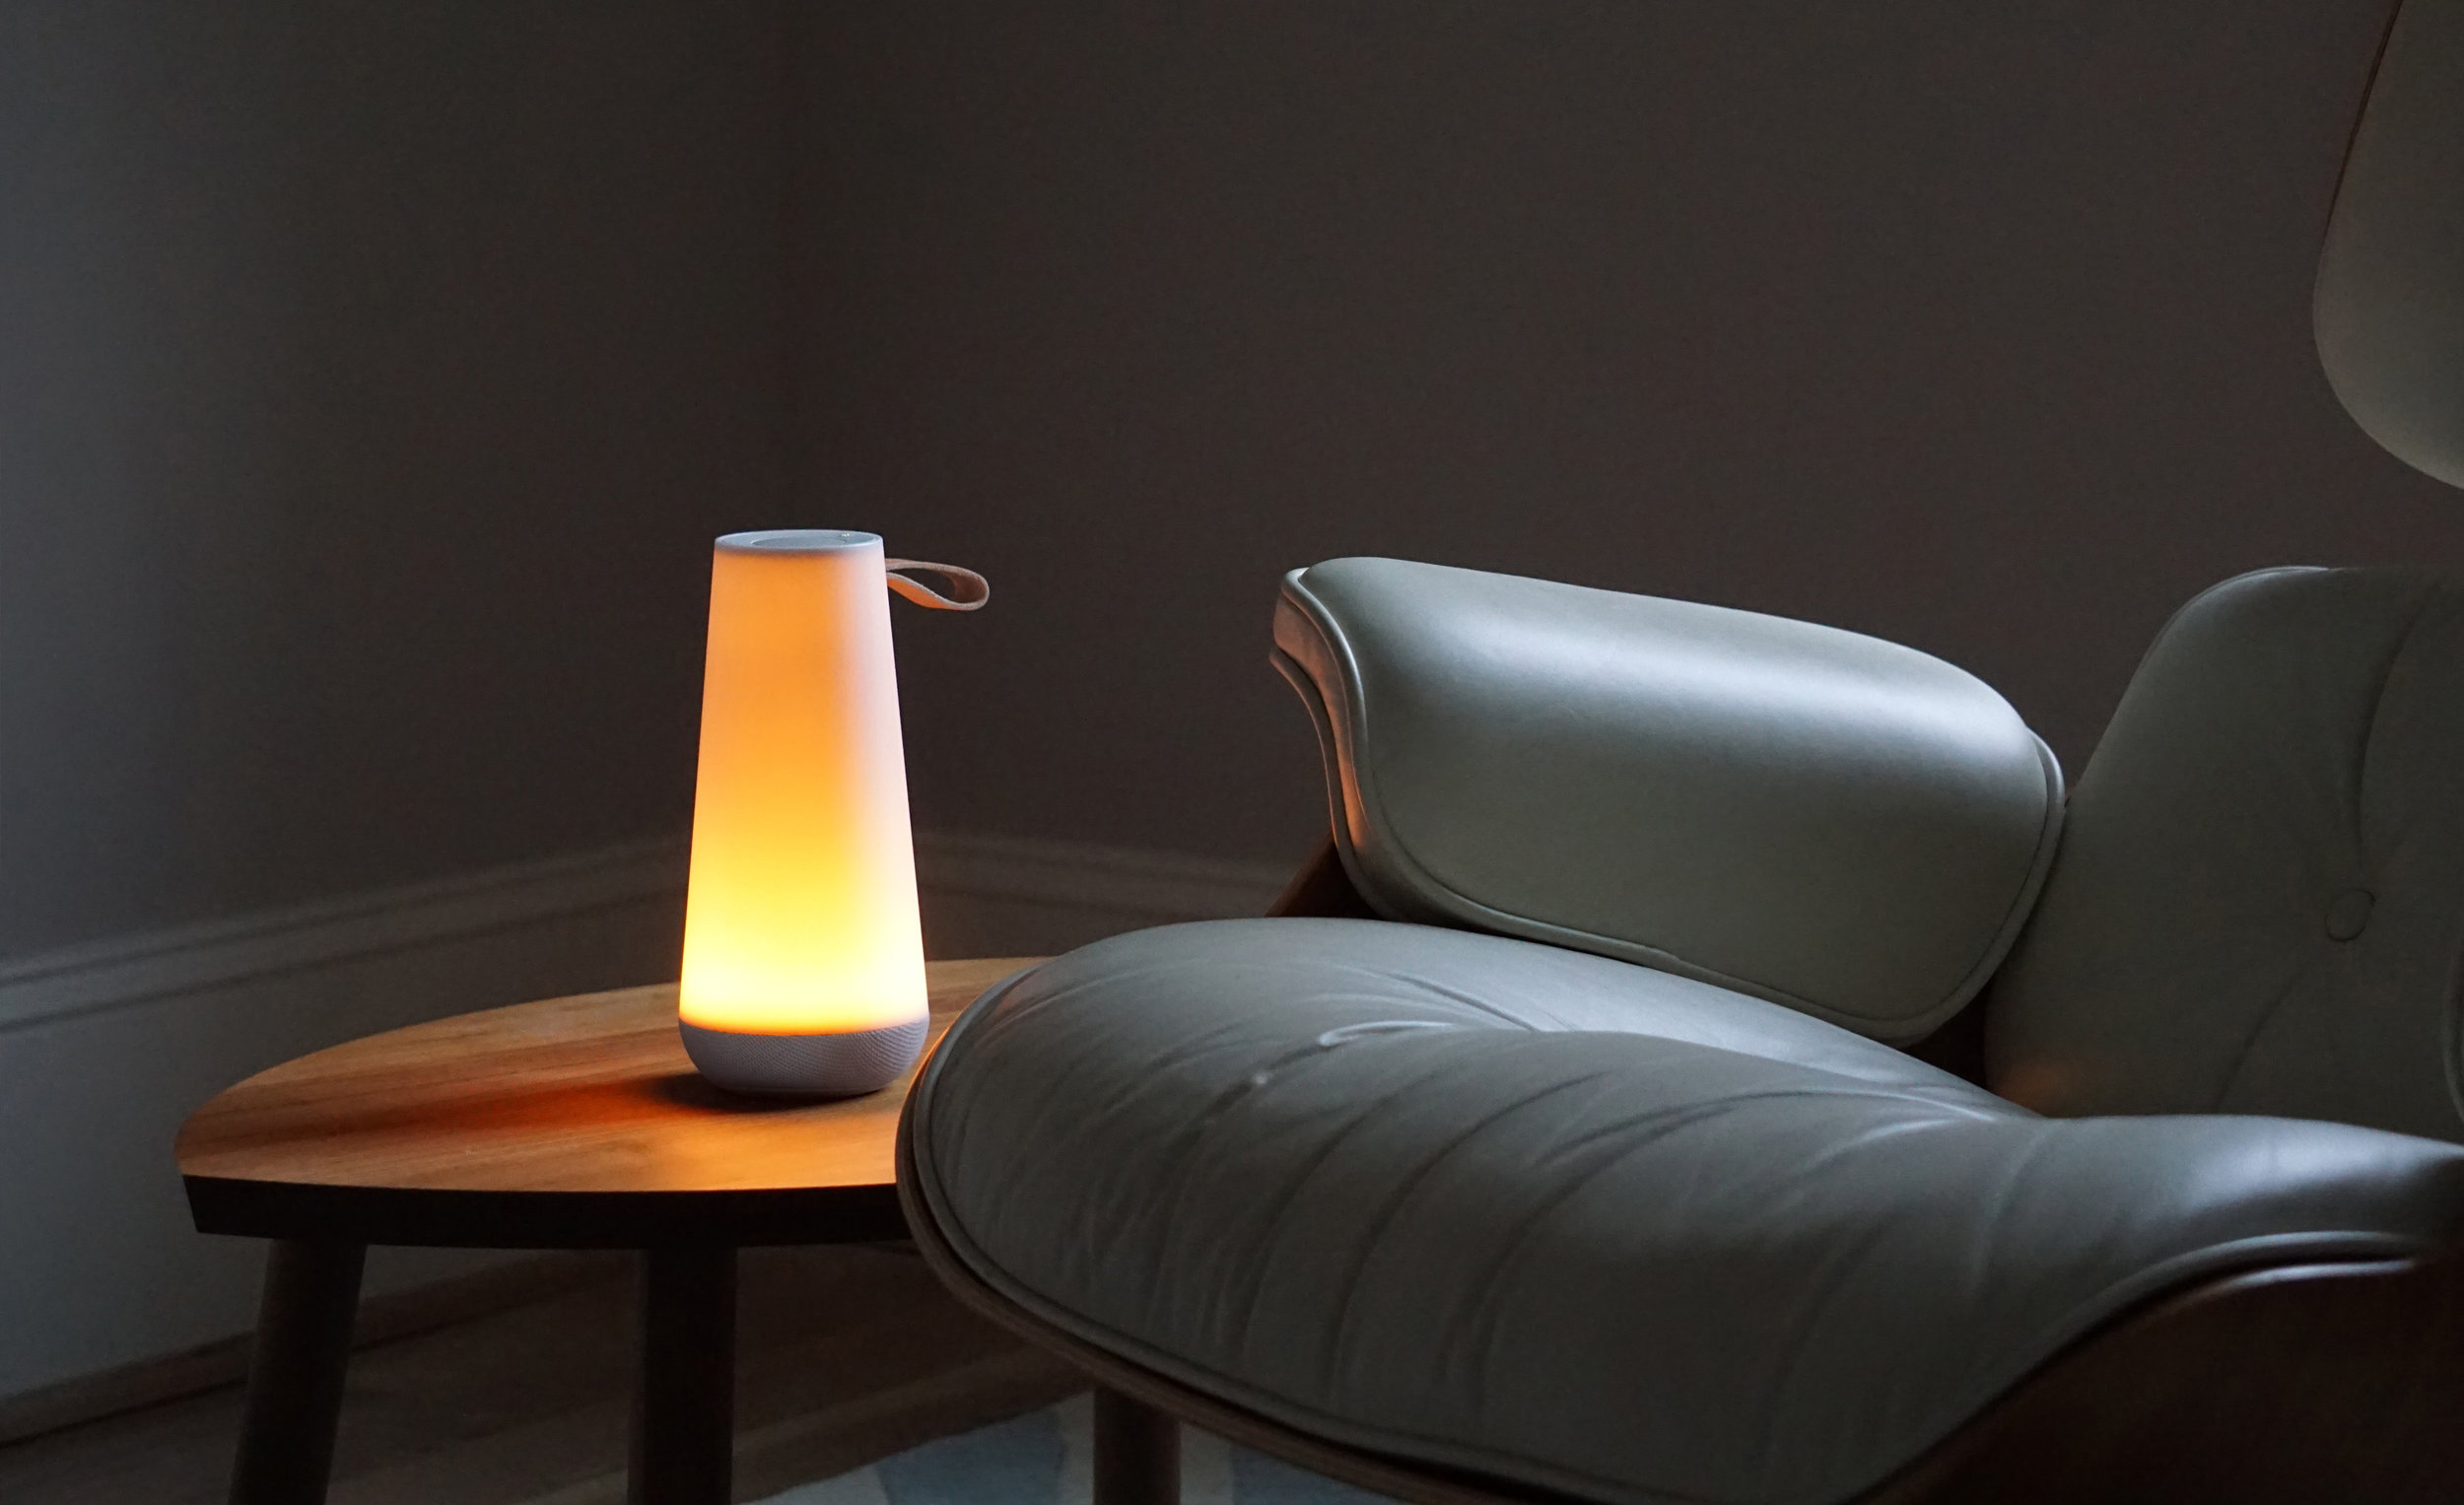 20 Smart lights for your home